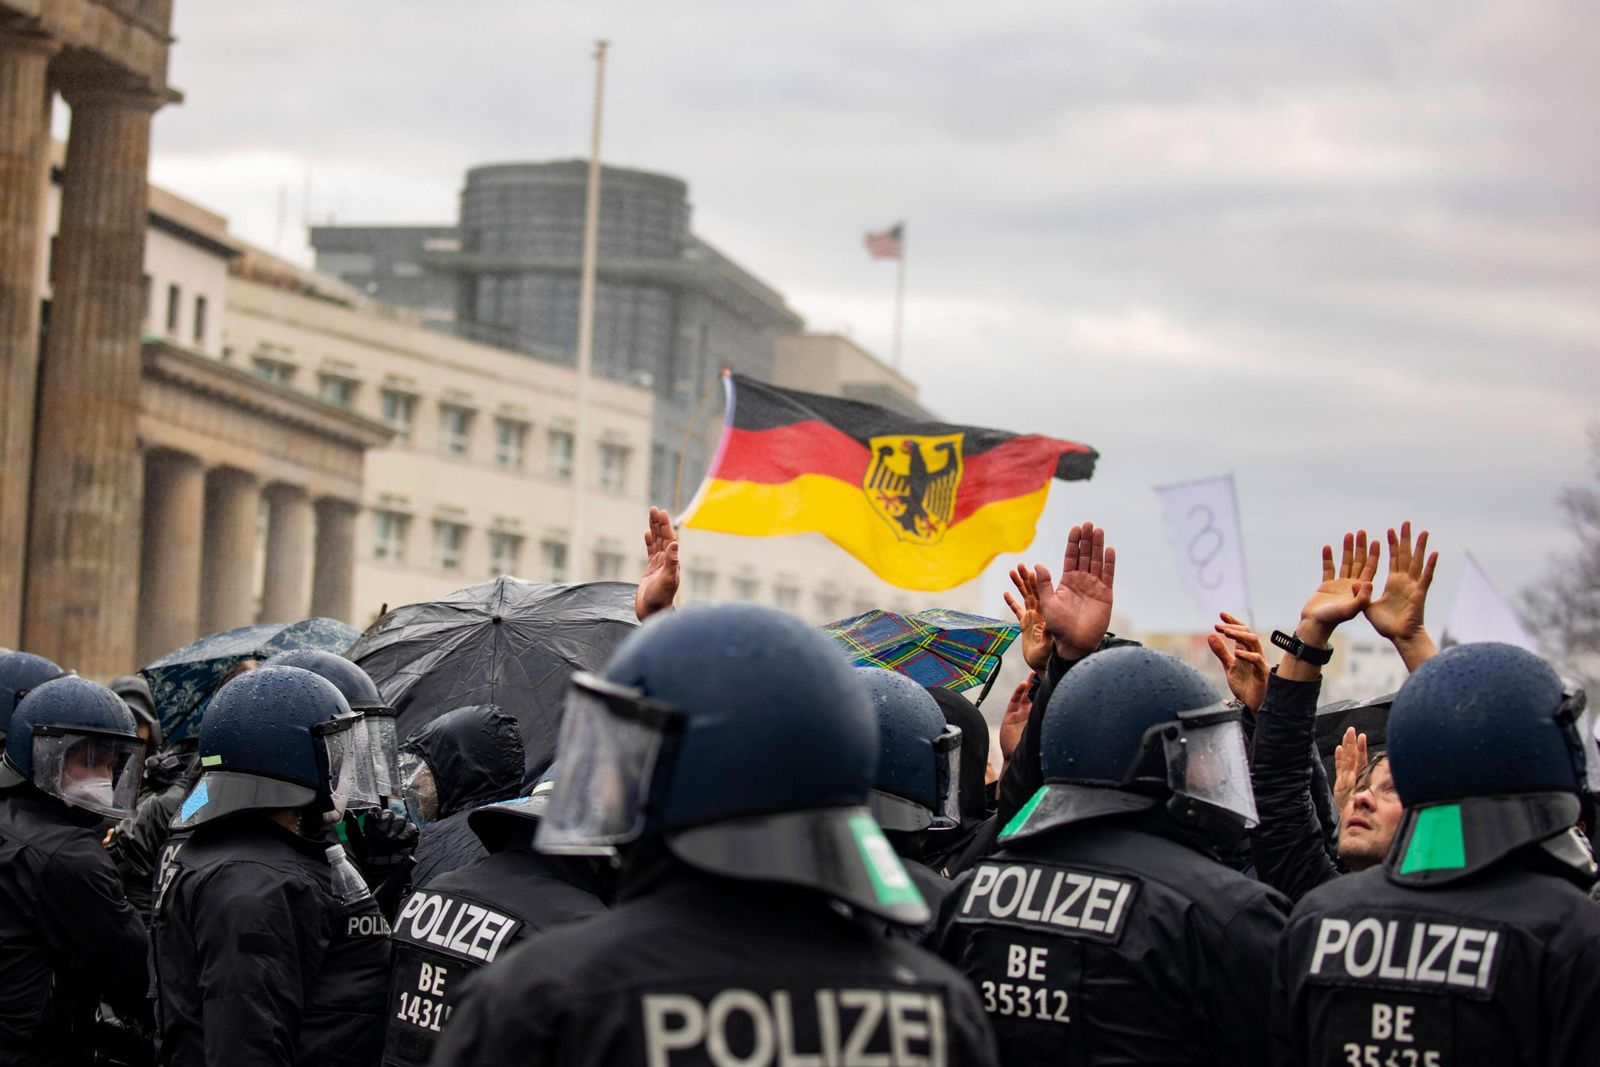 imago_st_1118_2253_Berlin_thousands_of_demonstrators_gather_in_government_quarter_11_0023_0106926821_preview-1